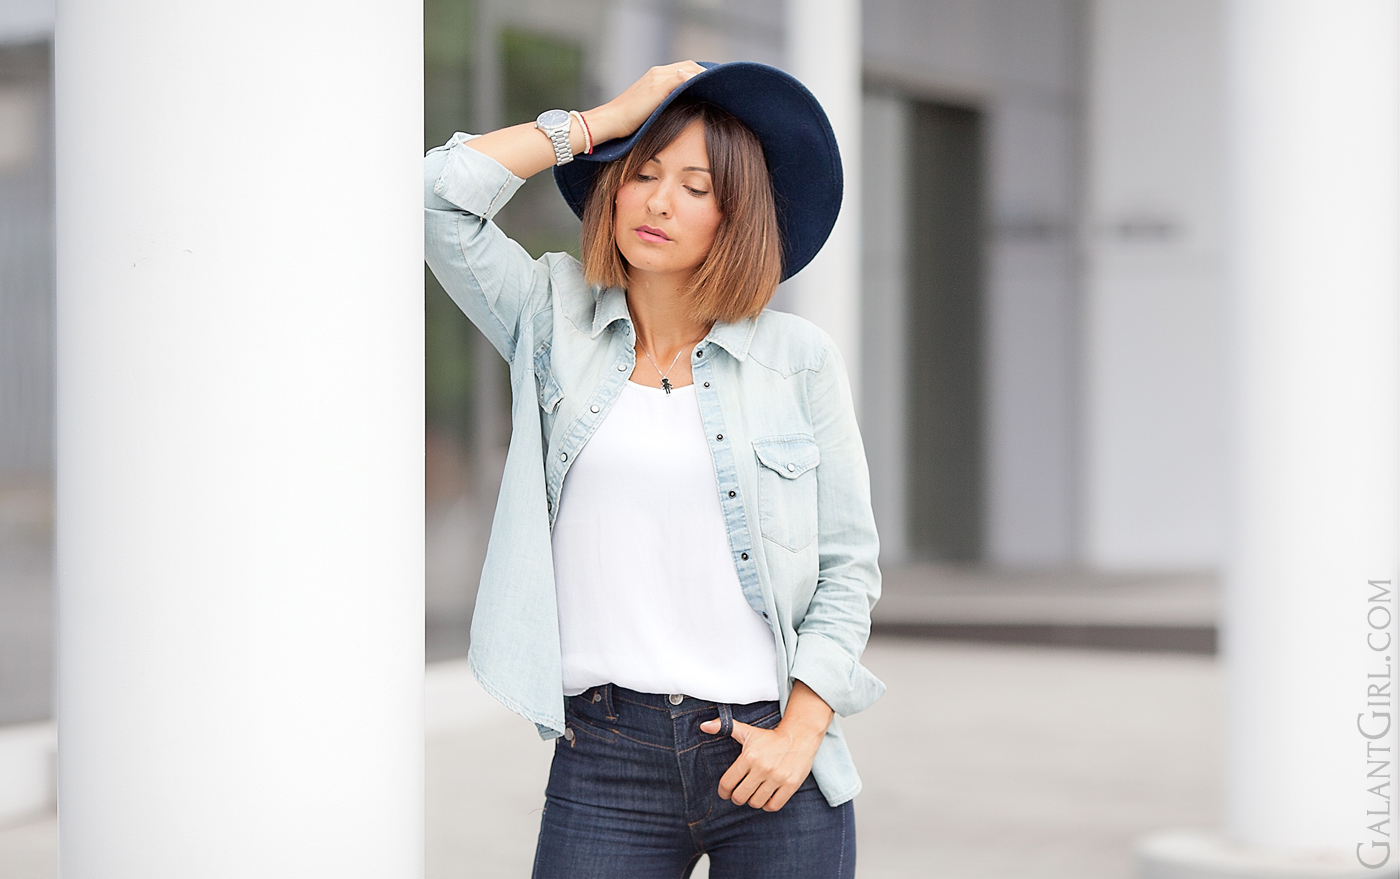 floppy-hat-denim-outfit-fashion-blogger-galant-girl